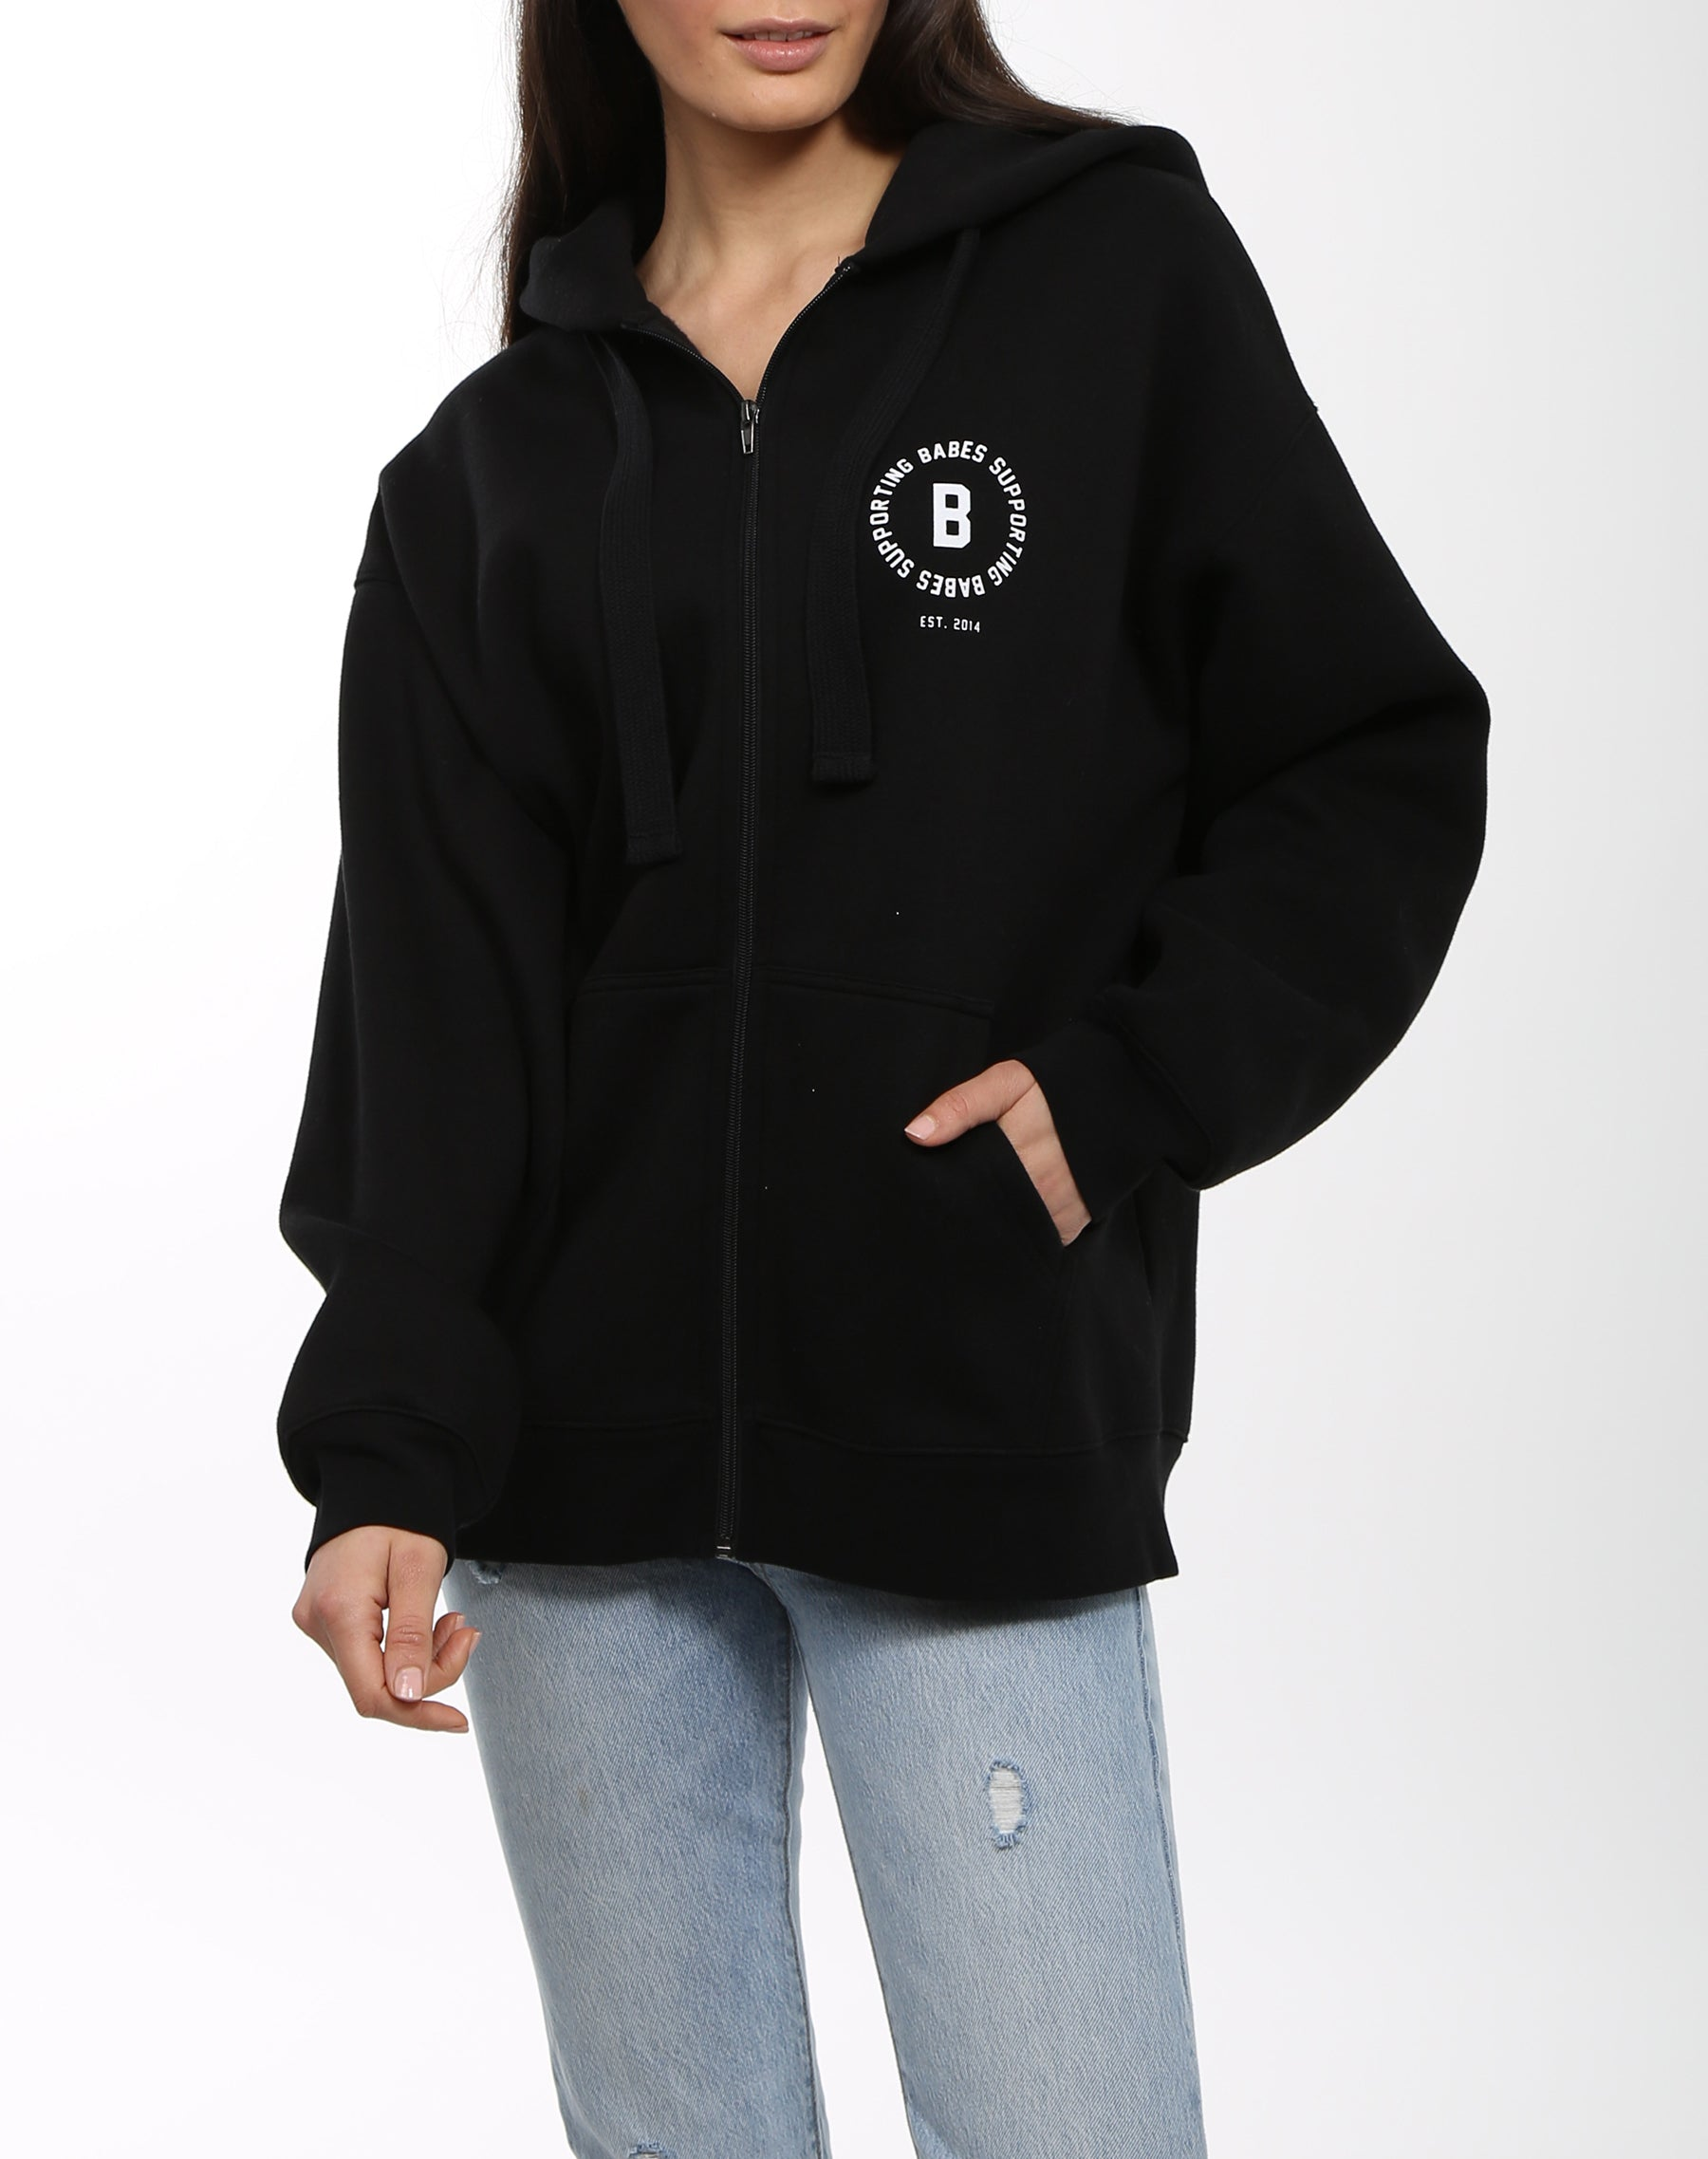 Photo 4 of the Babes Supporting Babes big sister zip up hoodie in black by Brunette the Label.